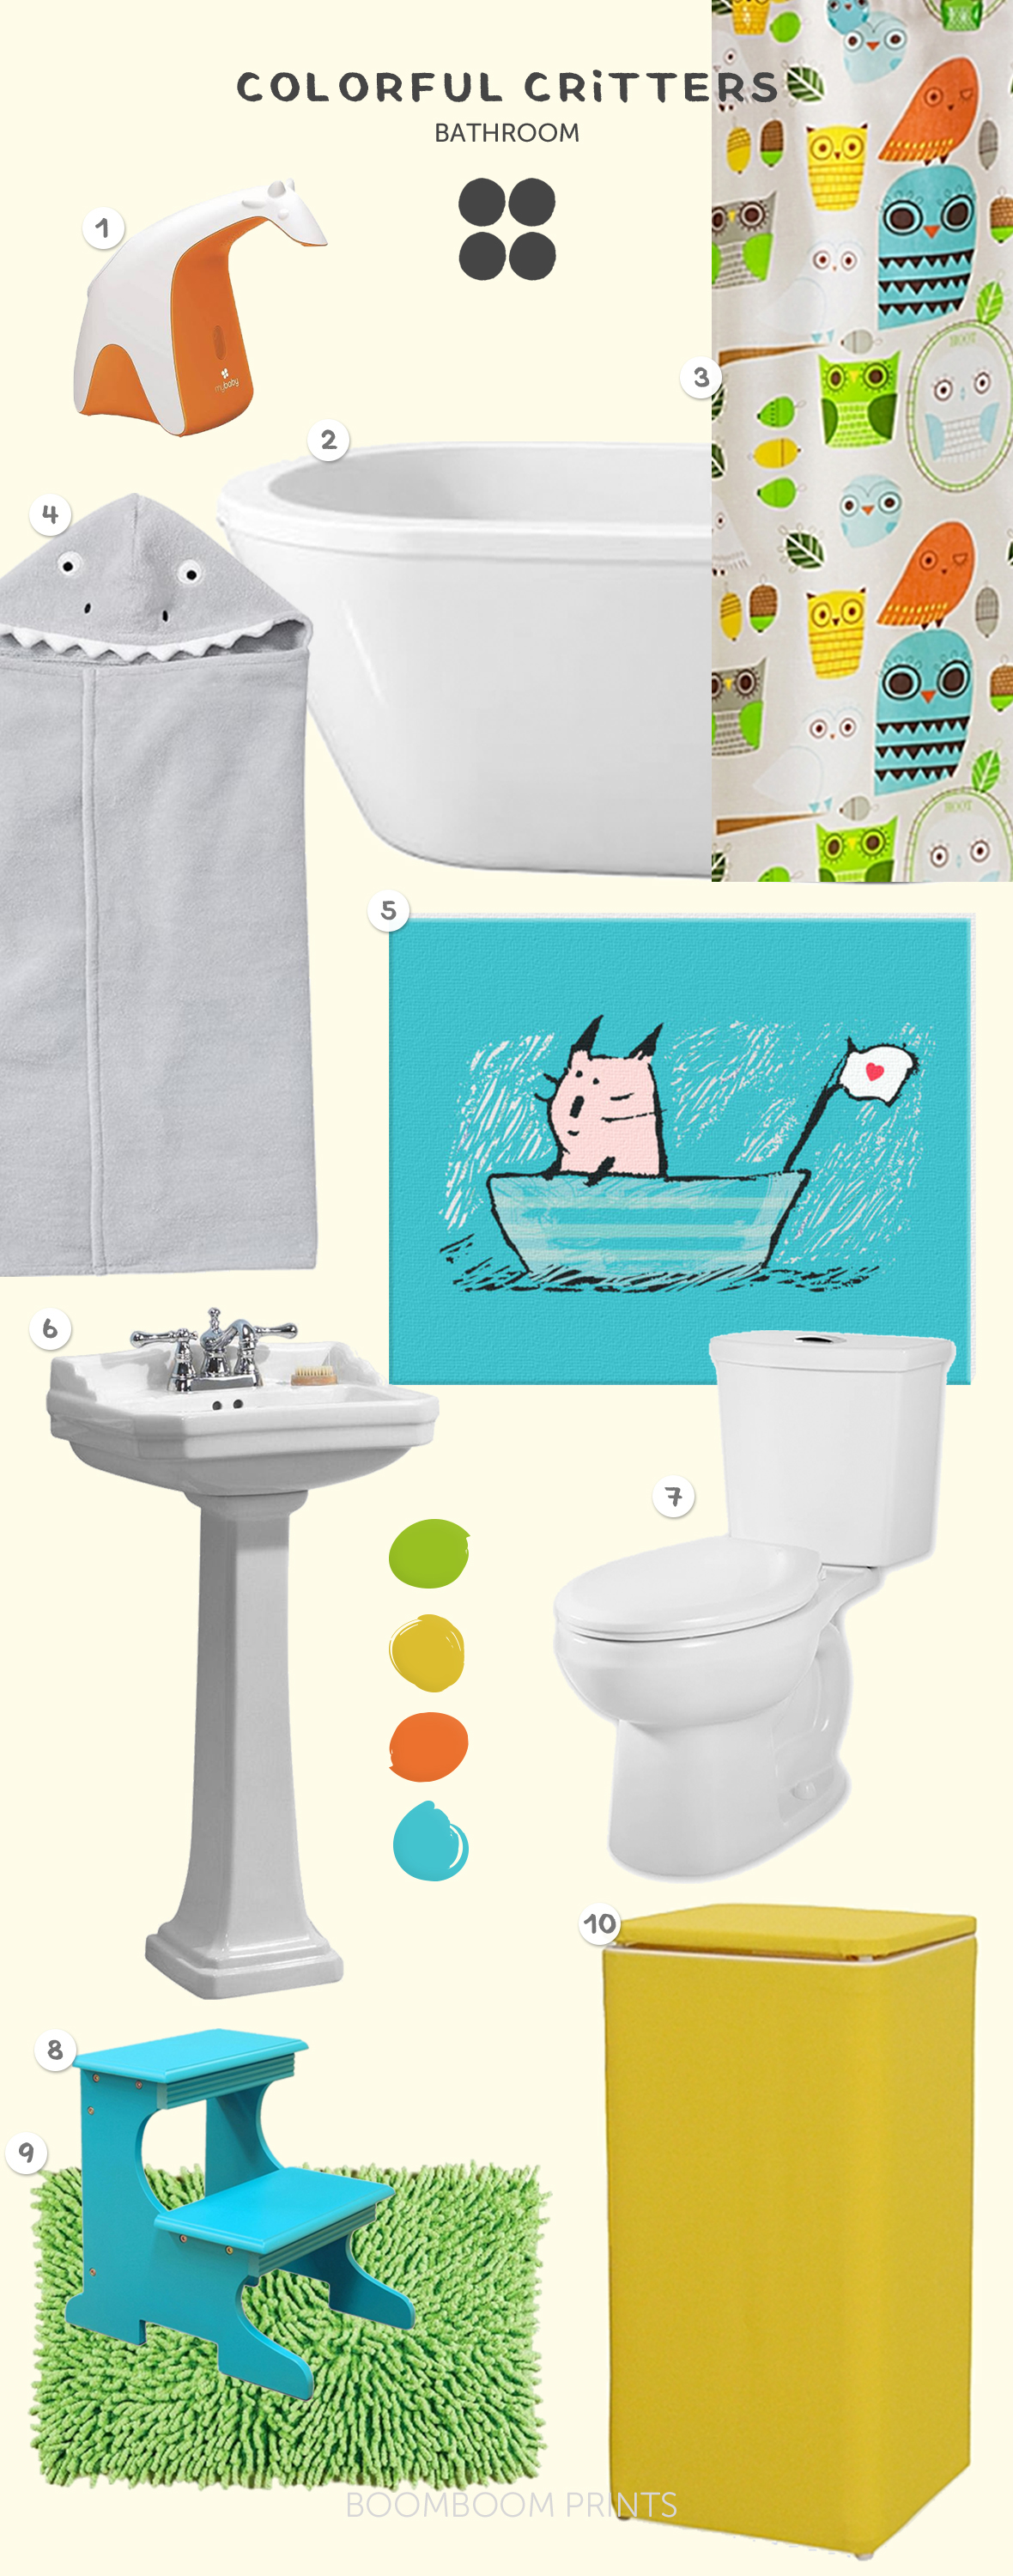 Carla Martell's Colorful Critters kids bathroom